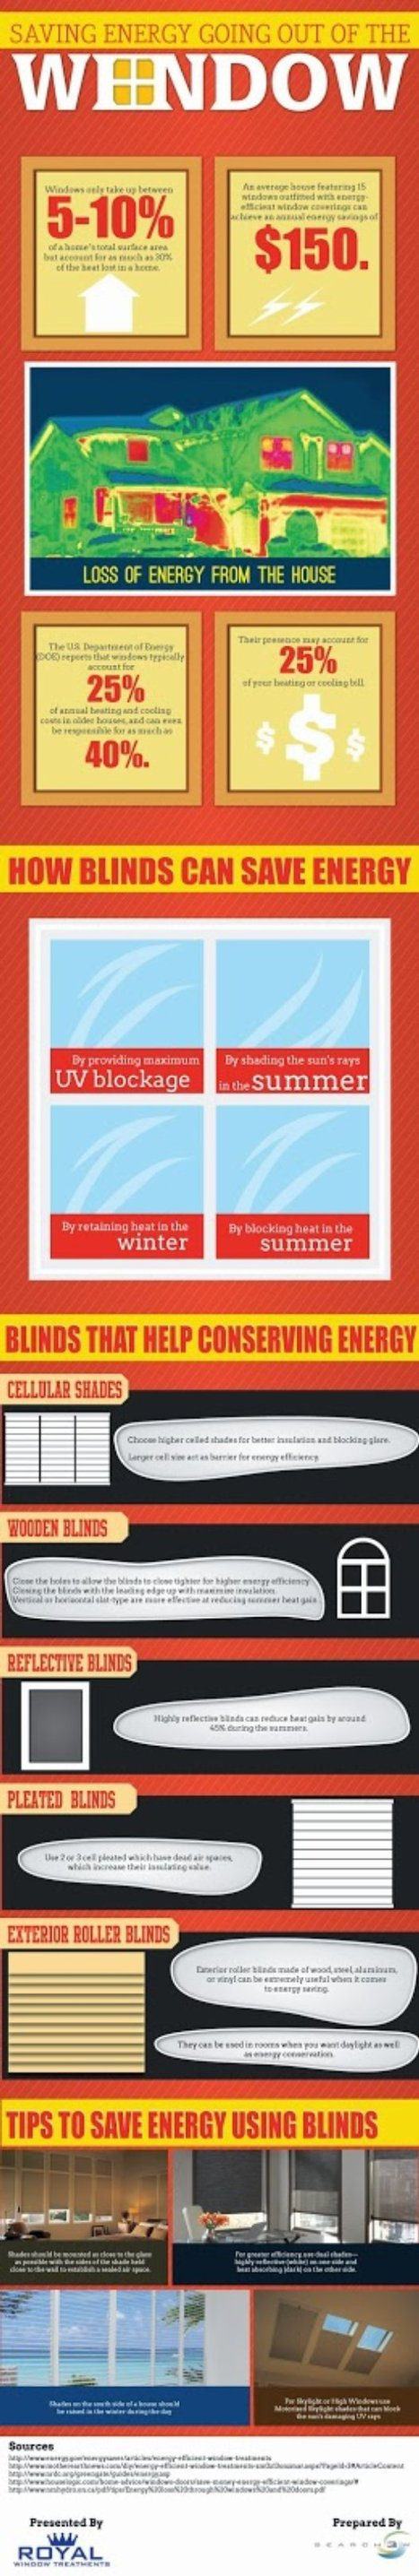 Saving Energy Going Out Of The Window ~ Royal Window Treatments | Royal Decorators | Scoop.it